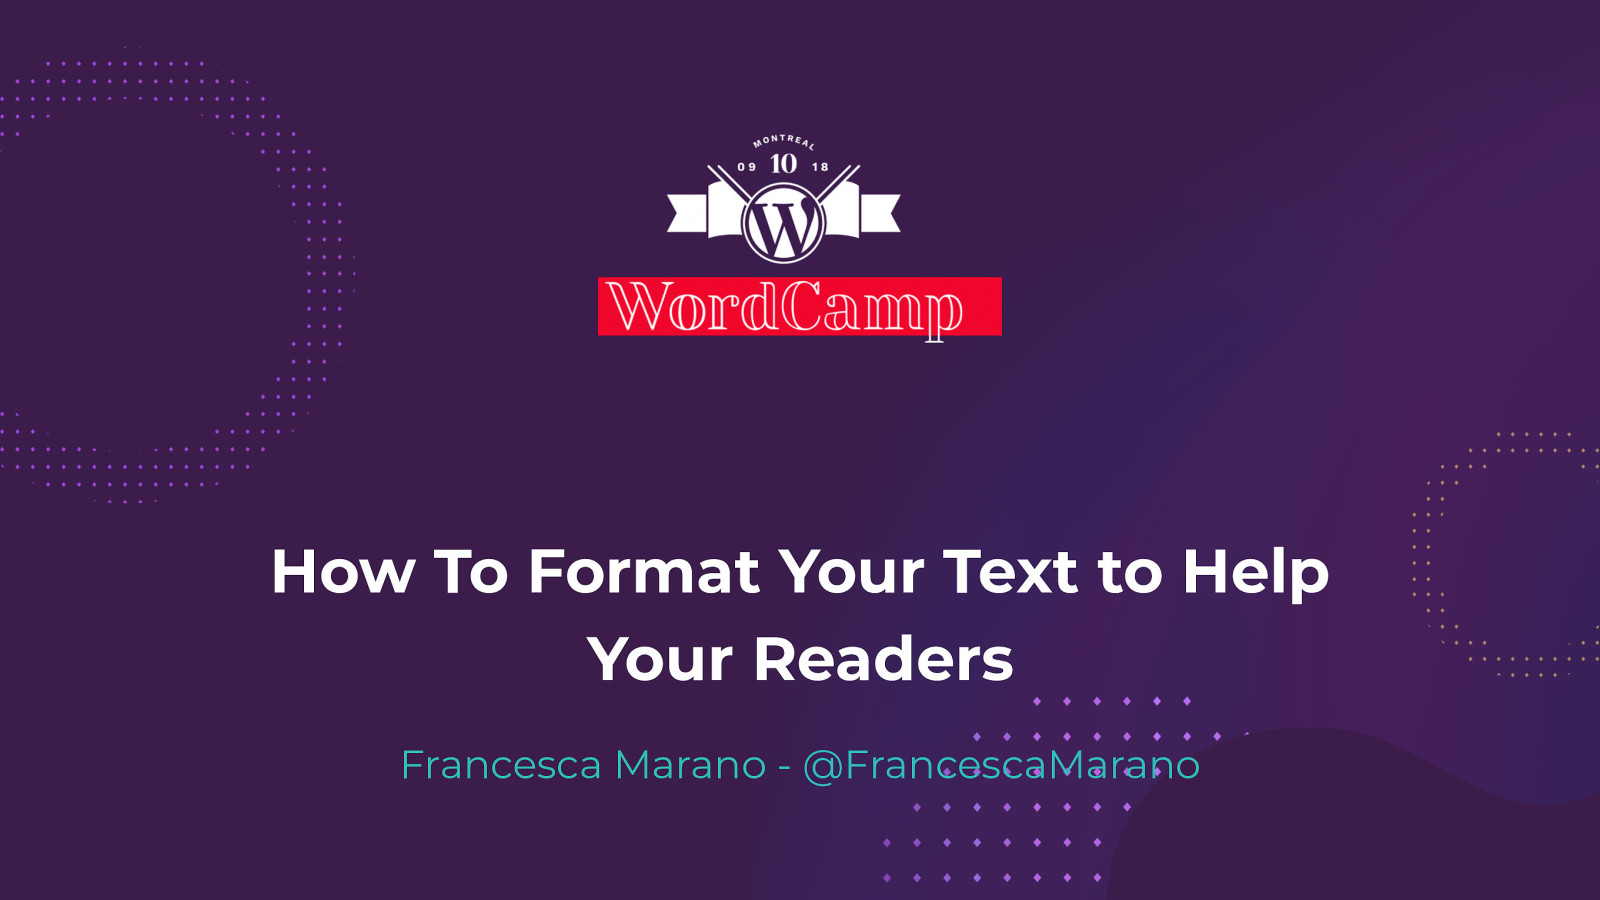 How to Format Your Text to Help Your Readers